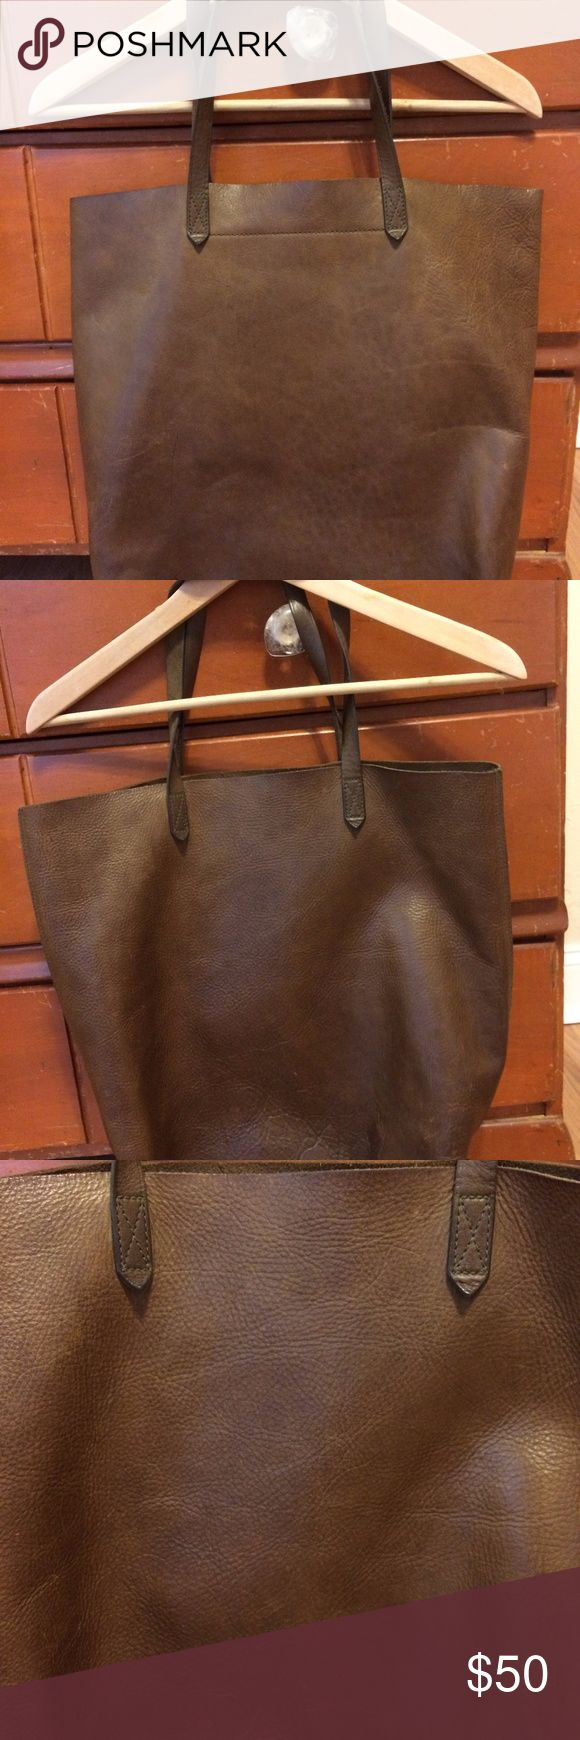 """Madewell Transport Tote What goes into our signature tote? Here it is by the numbers: 2 pieces of fine leather are used for the body. 8 inch strap drop: long enough to sling over your shoulder, but short enough to hold as a top handle. 1 interior side zip pocket to keep your keys, phone and wallet at the ready.  Made of vegetable-tanned leather that burnishes with wear into a beautiful patina. Interior zip pocket. Unlined. 8 1/4"""" handle drop. 14""""H x 14""""W x 6""""D. Madewell Bags Totes"""